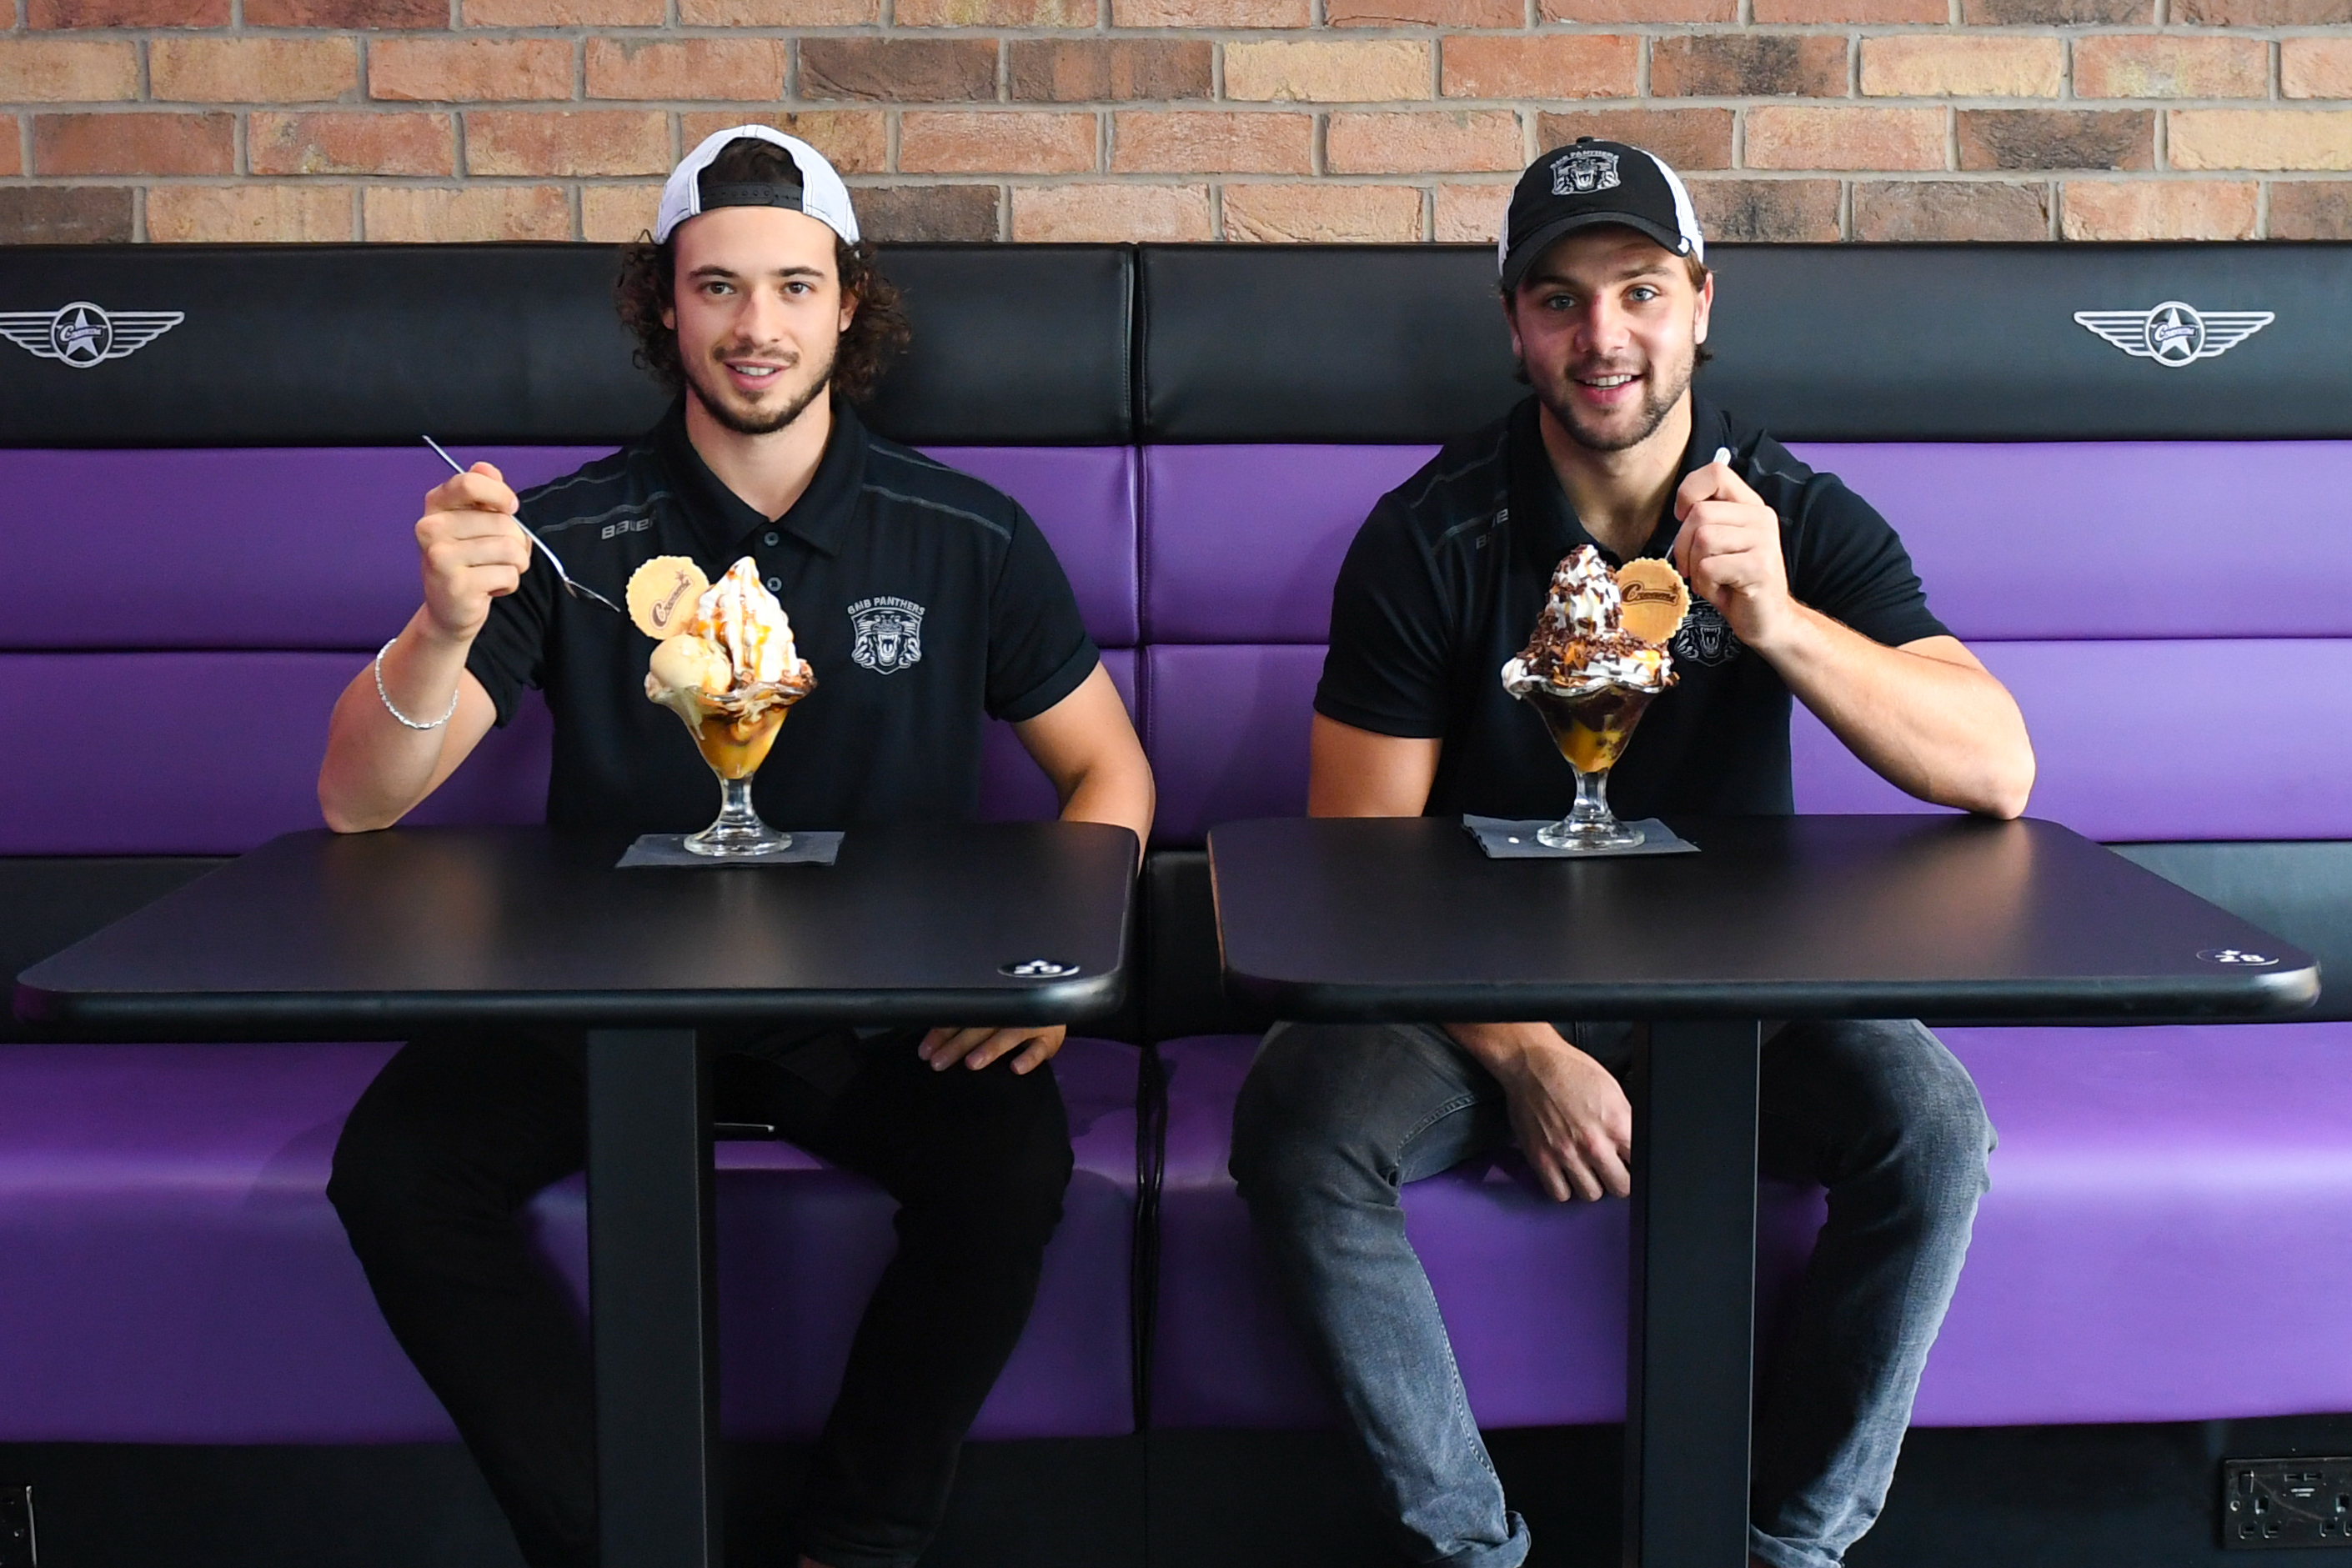 Panthers join up with Creams for sweet treat Top Image